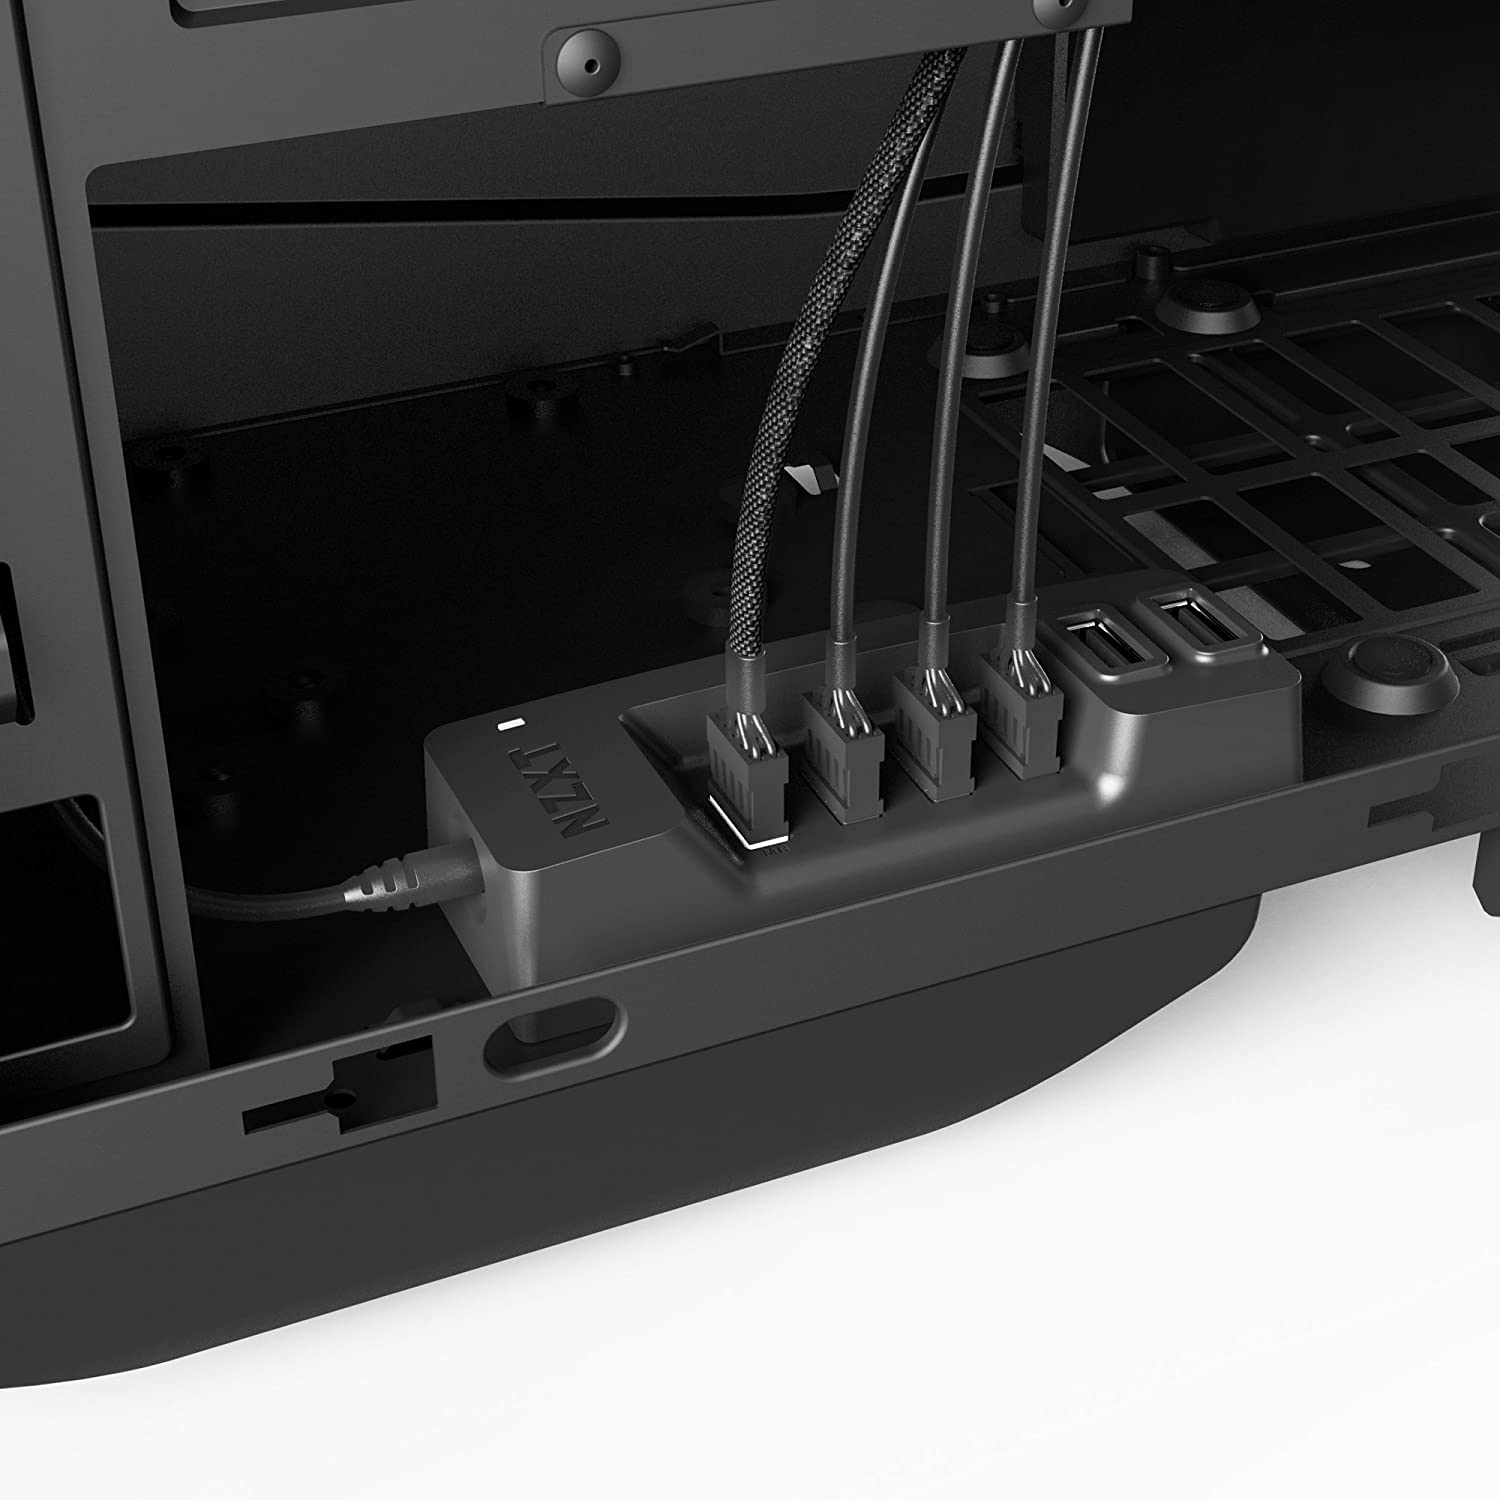 Nzxt Internal Usb Hub Controller Black Ac Iusbh M1 Front Panel Wiring Issue Solved Acer Components Computers Accessories